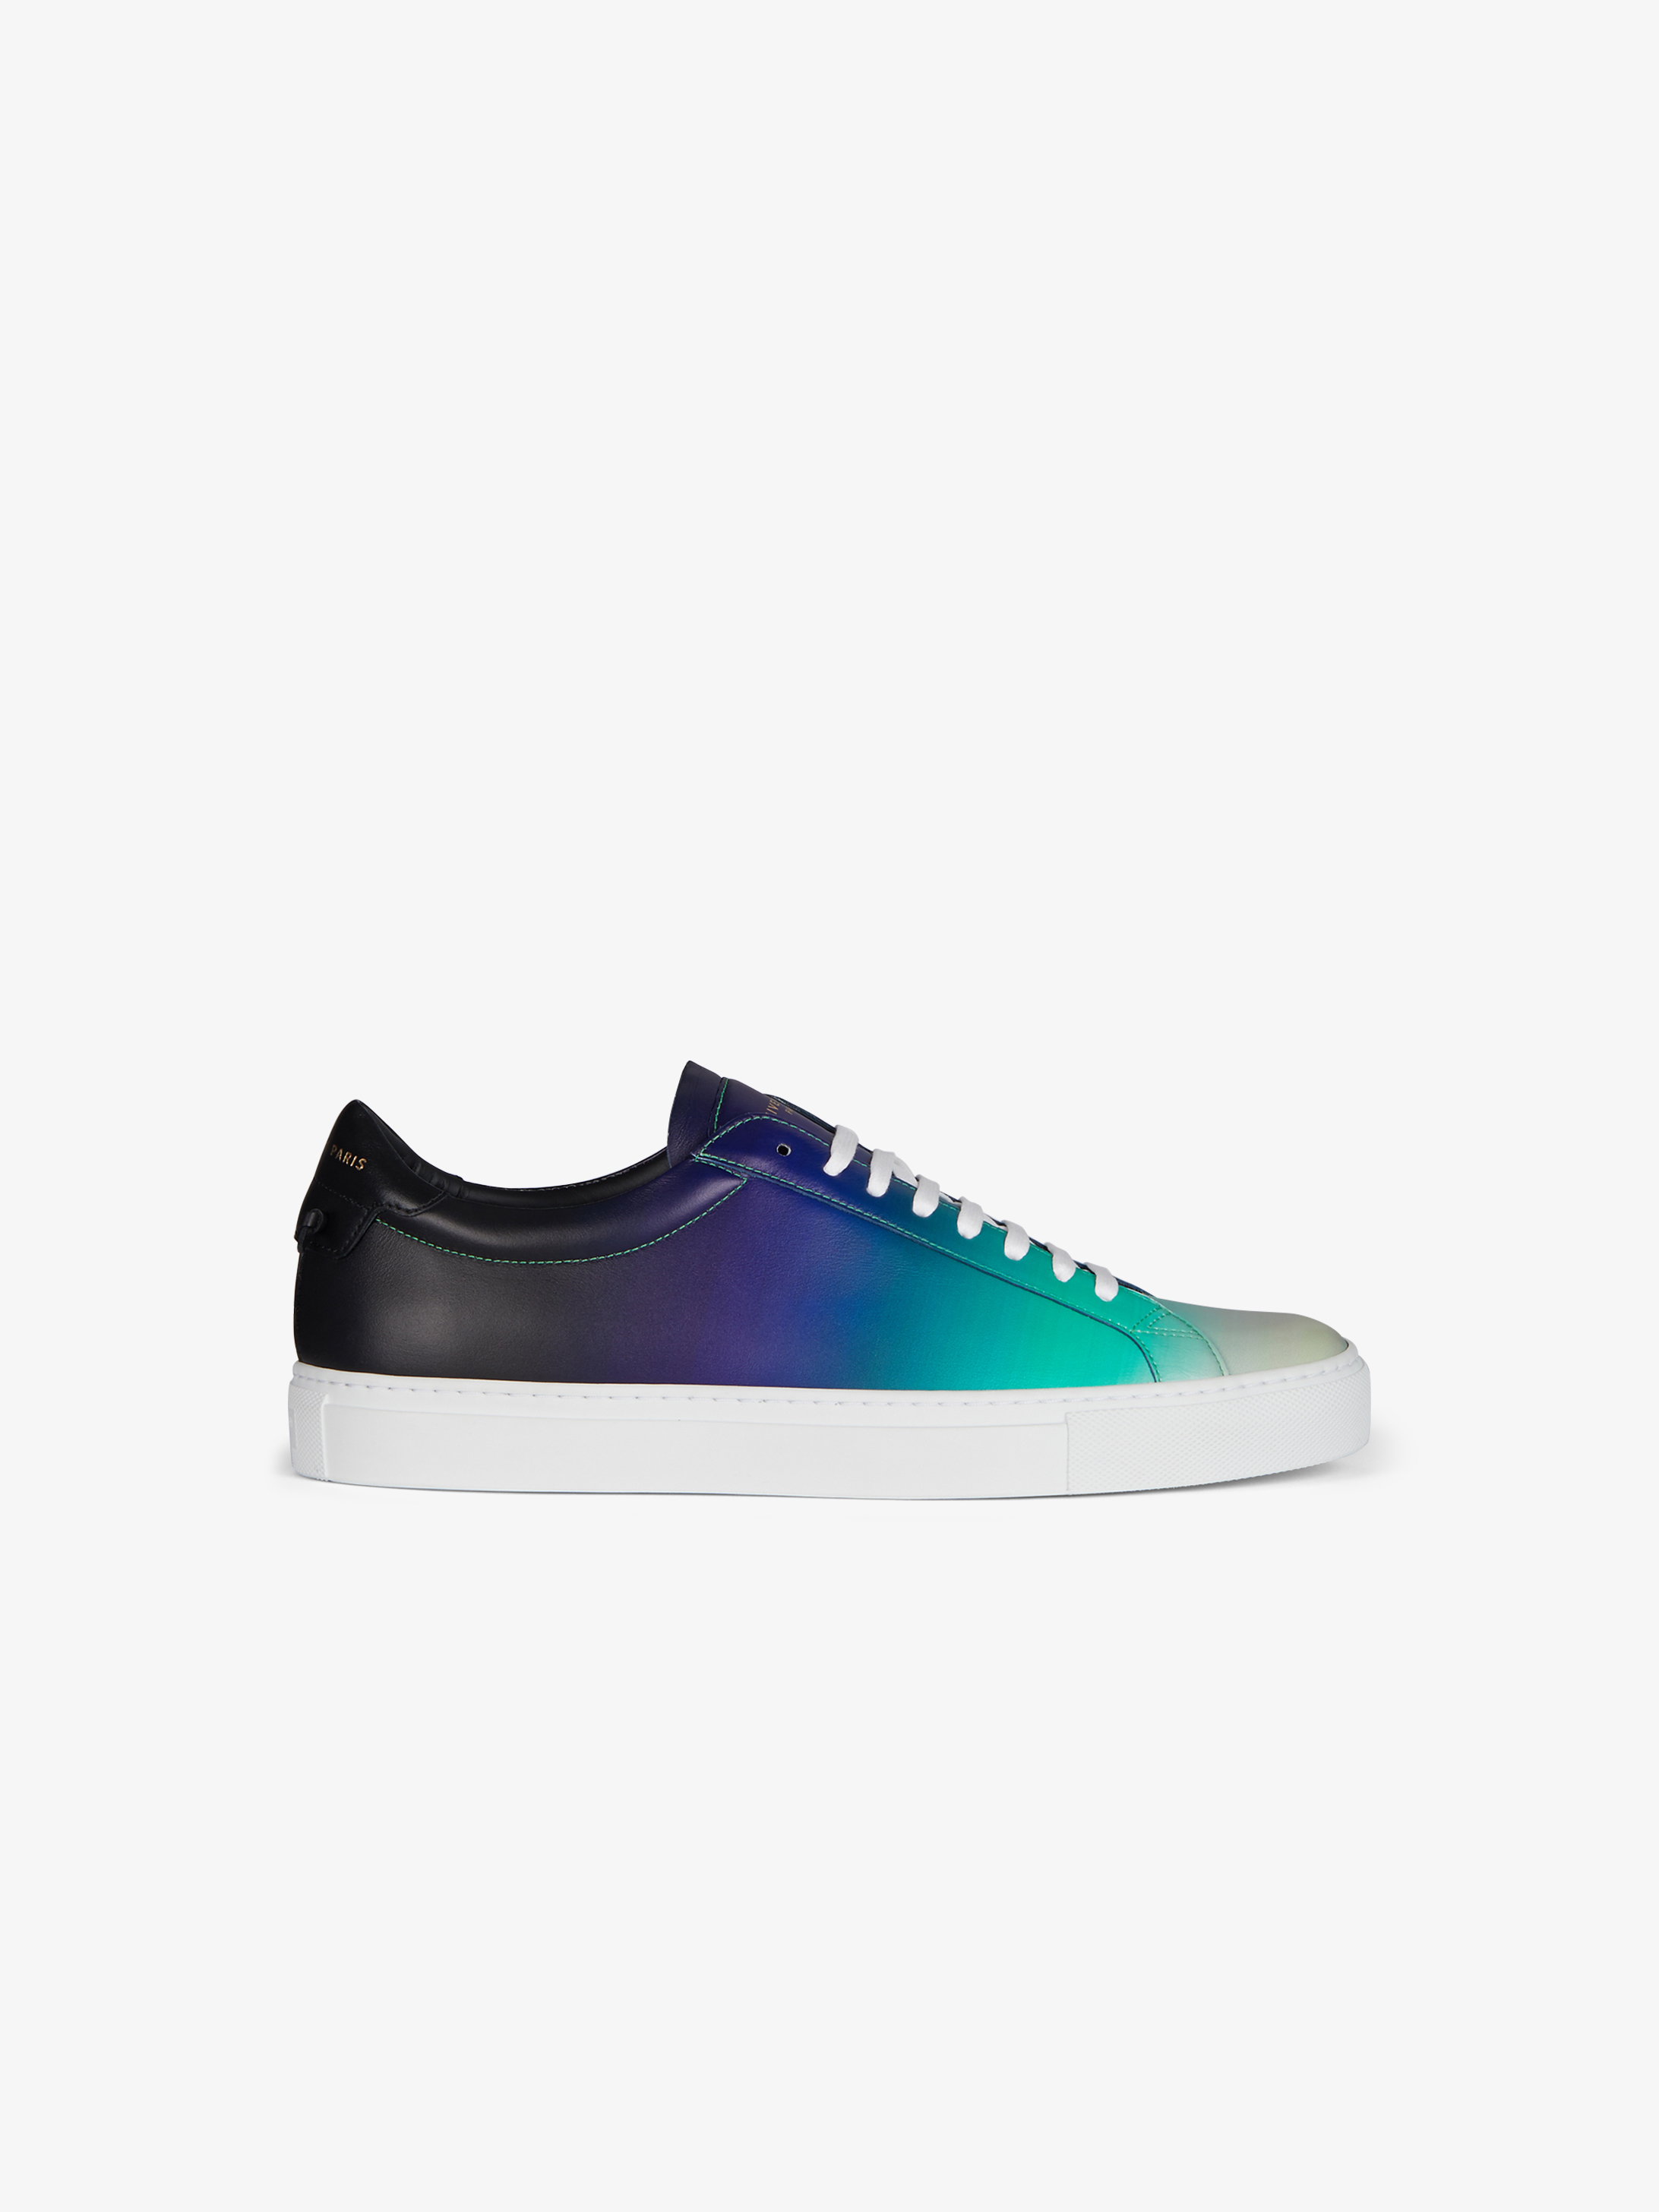 Sneakers in matte faded leather